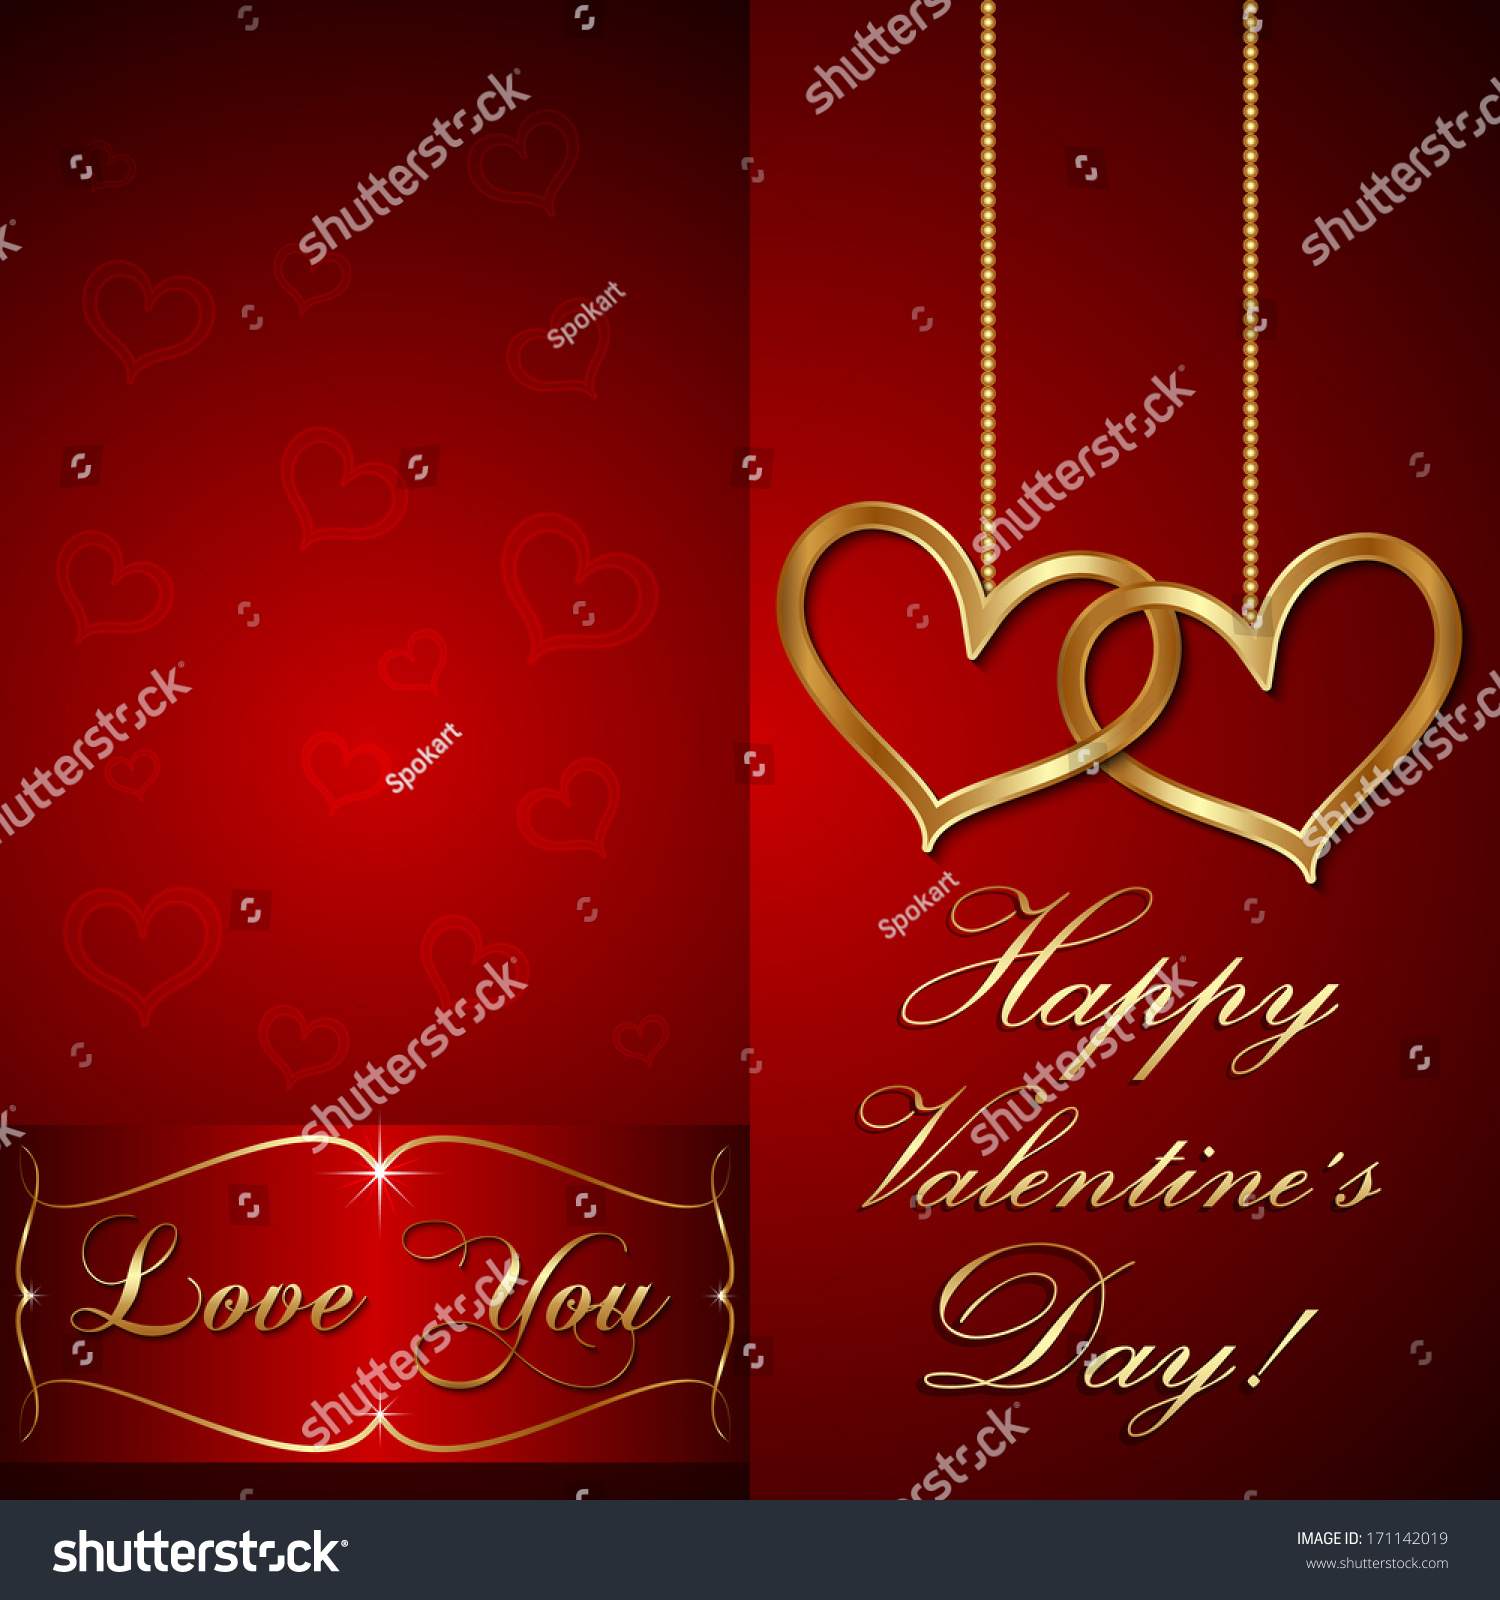 Vector Red Saint Valentine Greeting Card Stock Vector 171142019